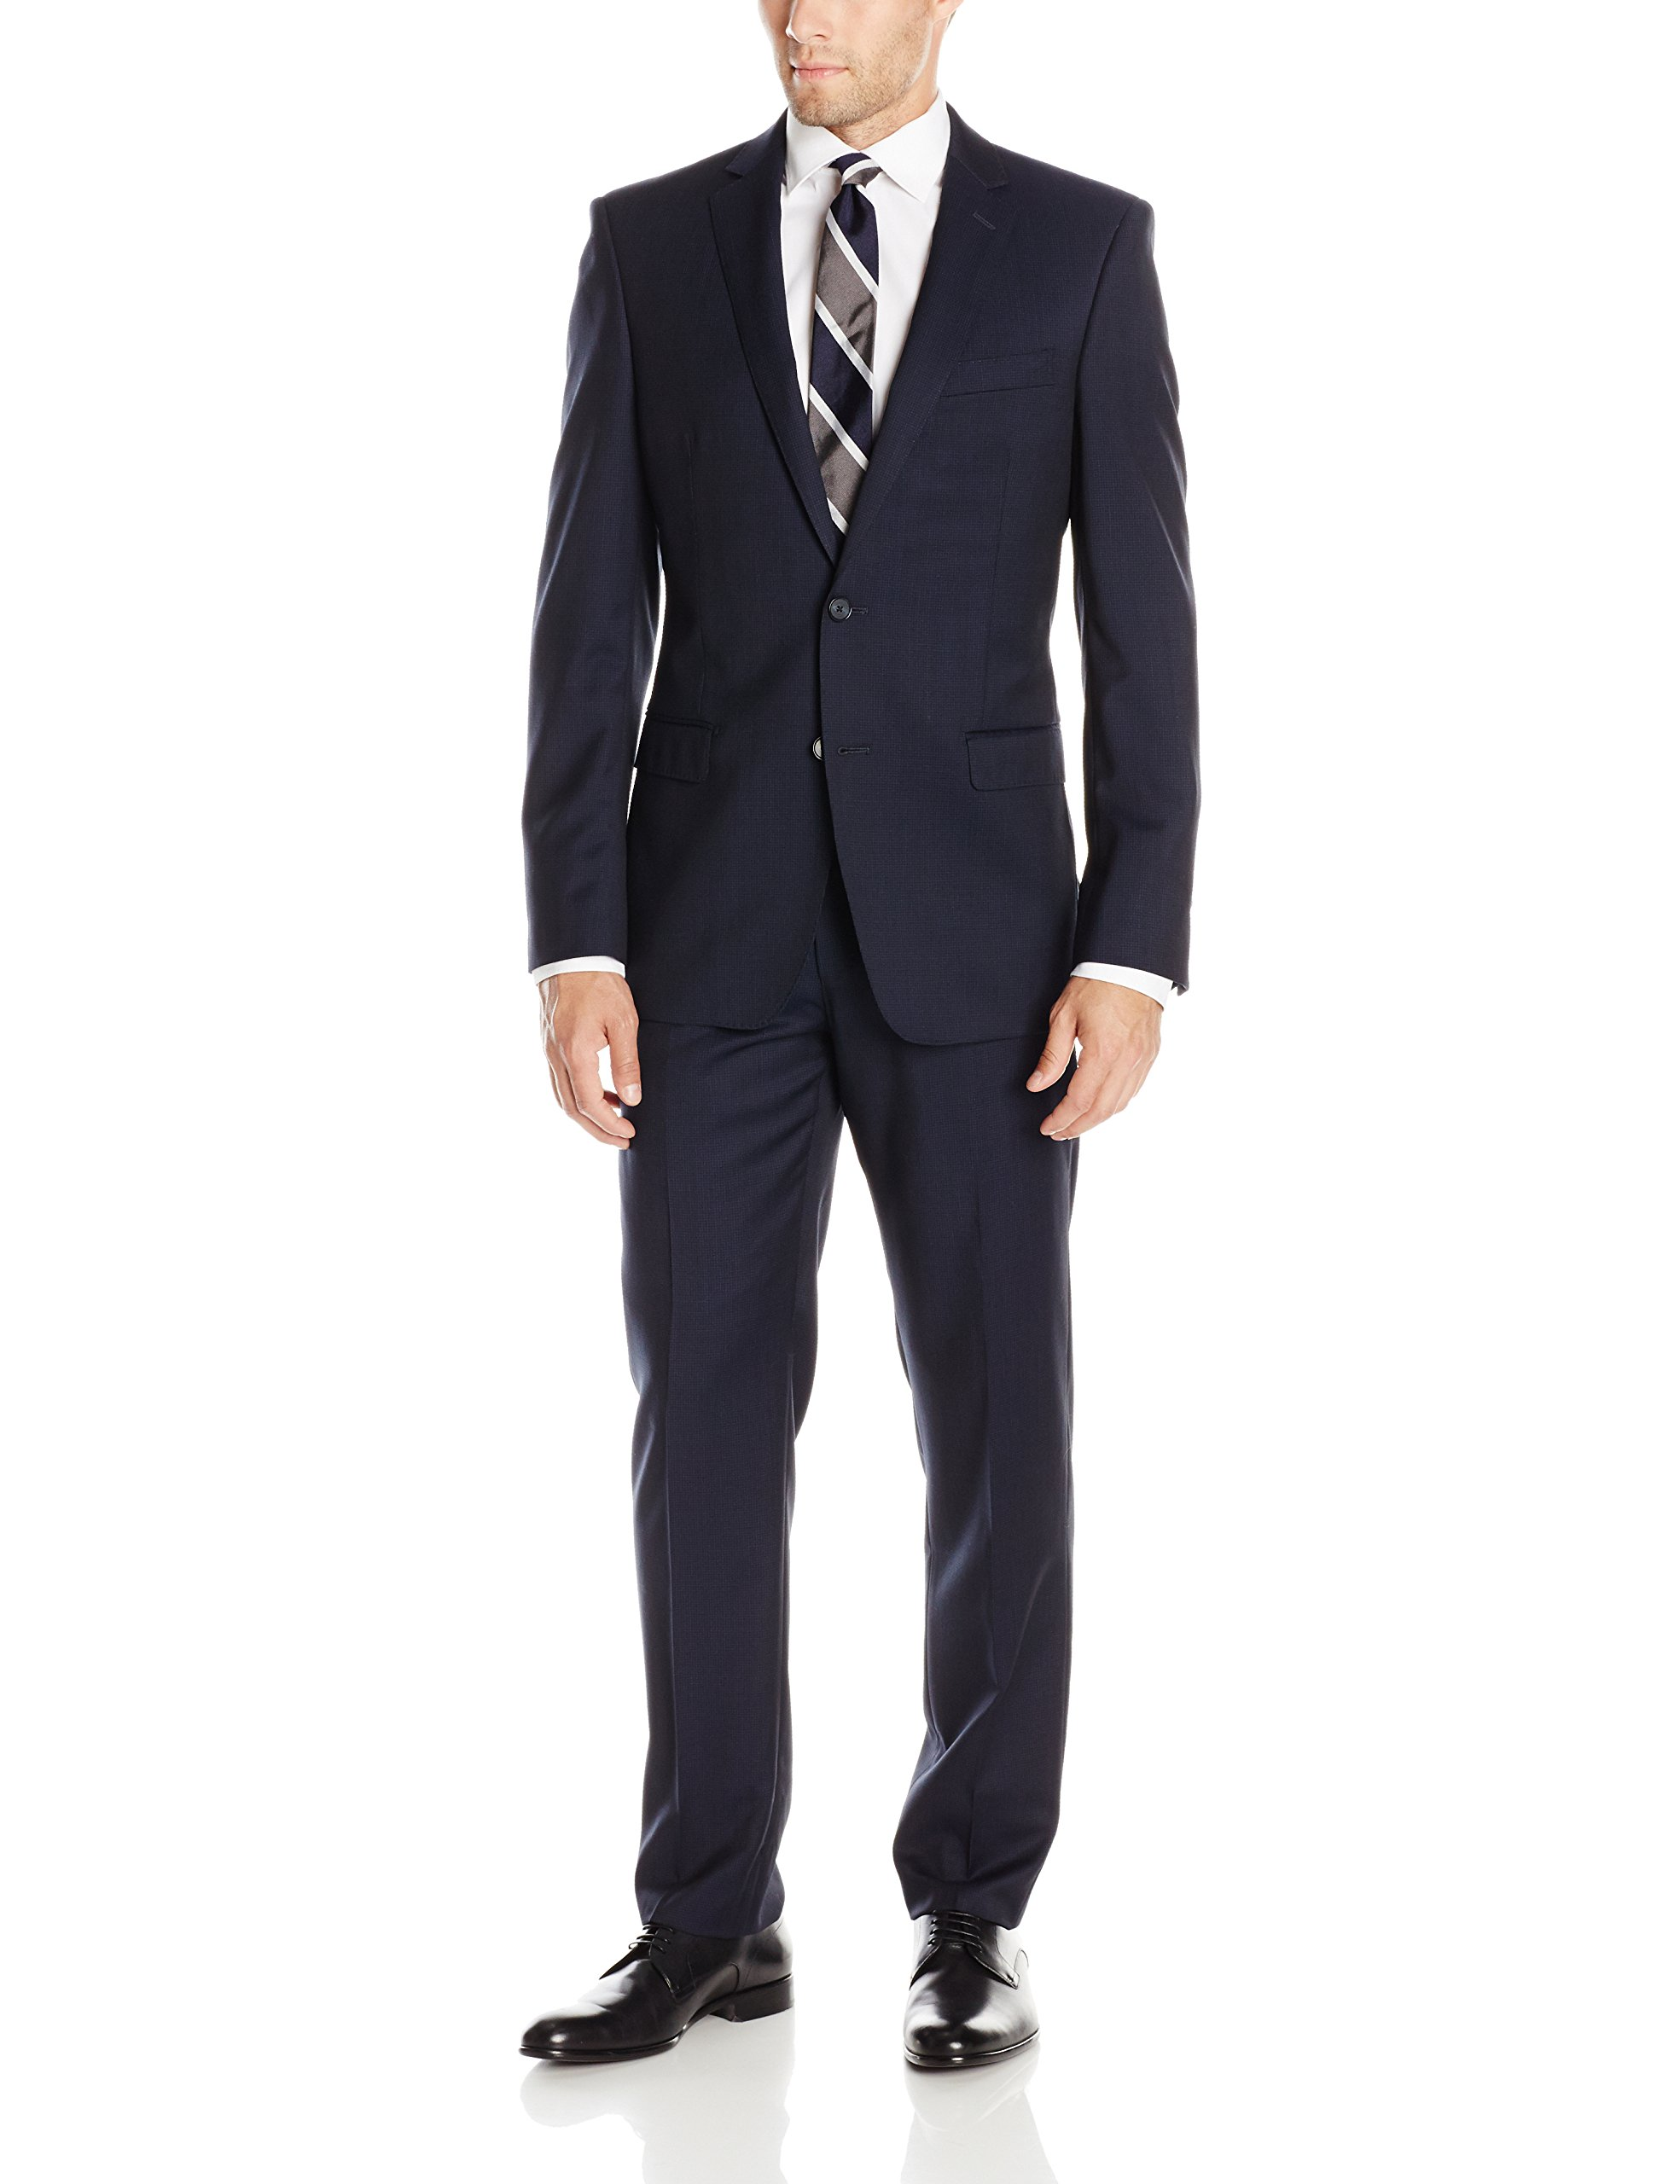 DKNY Men's Dekalb Mini Check 2 Button Slim Fit Suit, Navy, 42/Regular